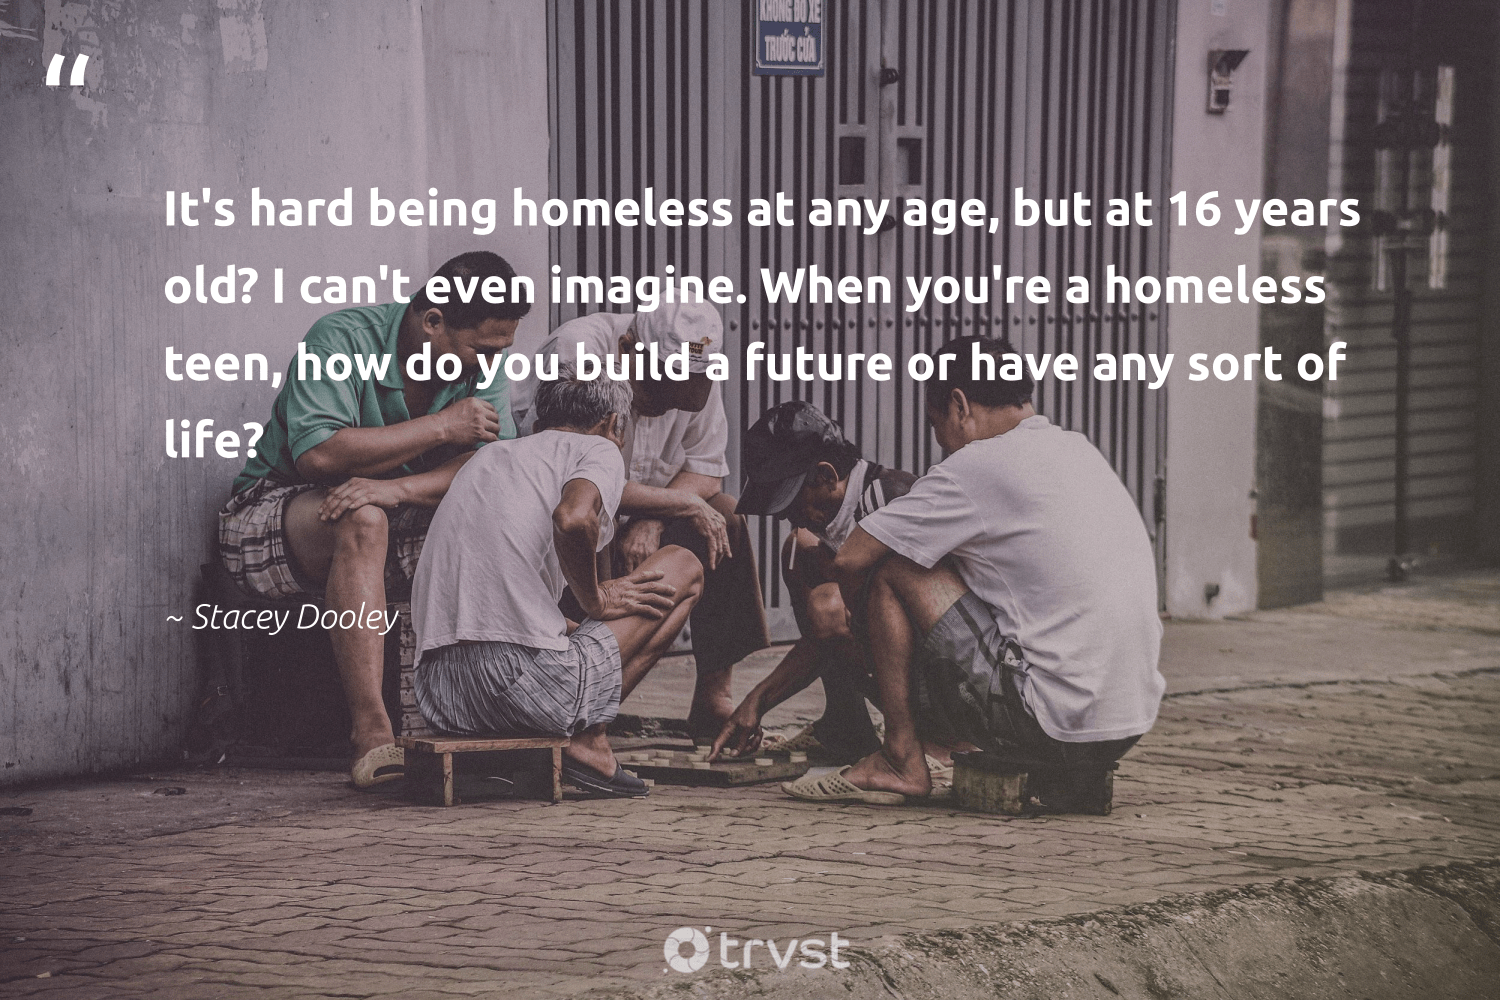 """""""It's hard being homeless at any age, but at 16 years old? I can't even imagine. When you're a homeless teen, how do you build a future or have any sort of life?""""  - Stacey Dooley #trvst #quotes #homelessness #homeless #makeadifference #inclusion #changetheworld #equalopportunity #weareallone #dosomething #sustainablefutures #equalrights"""